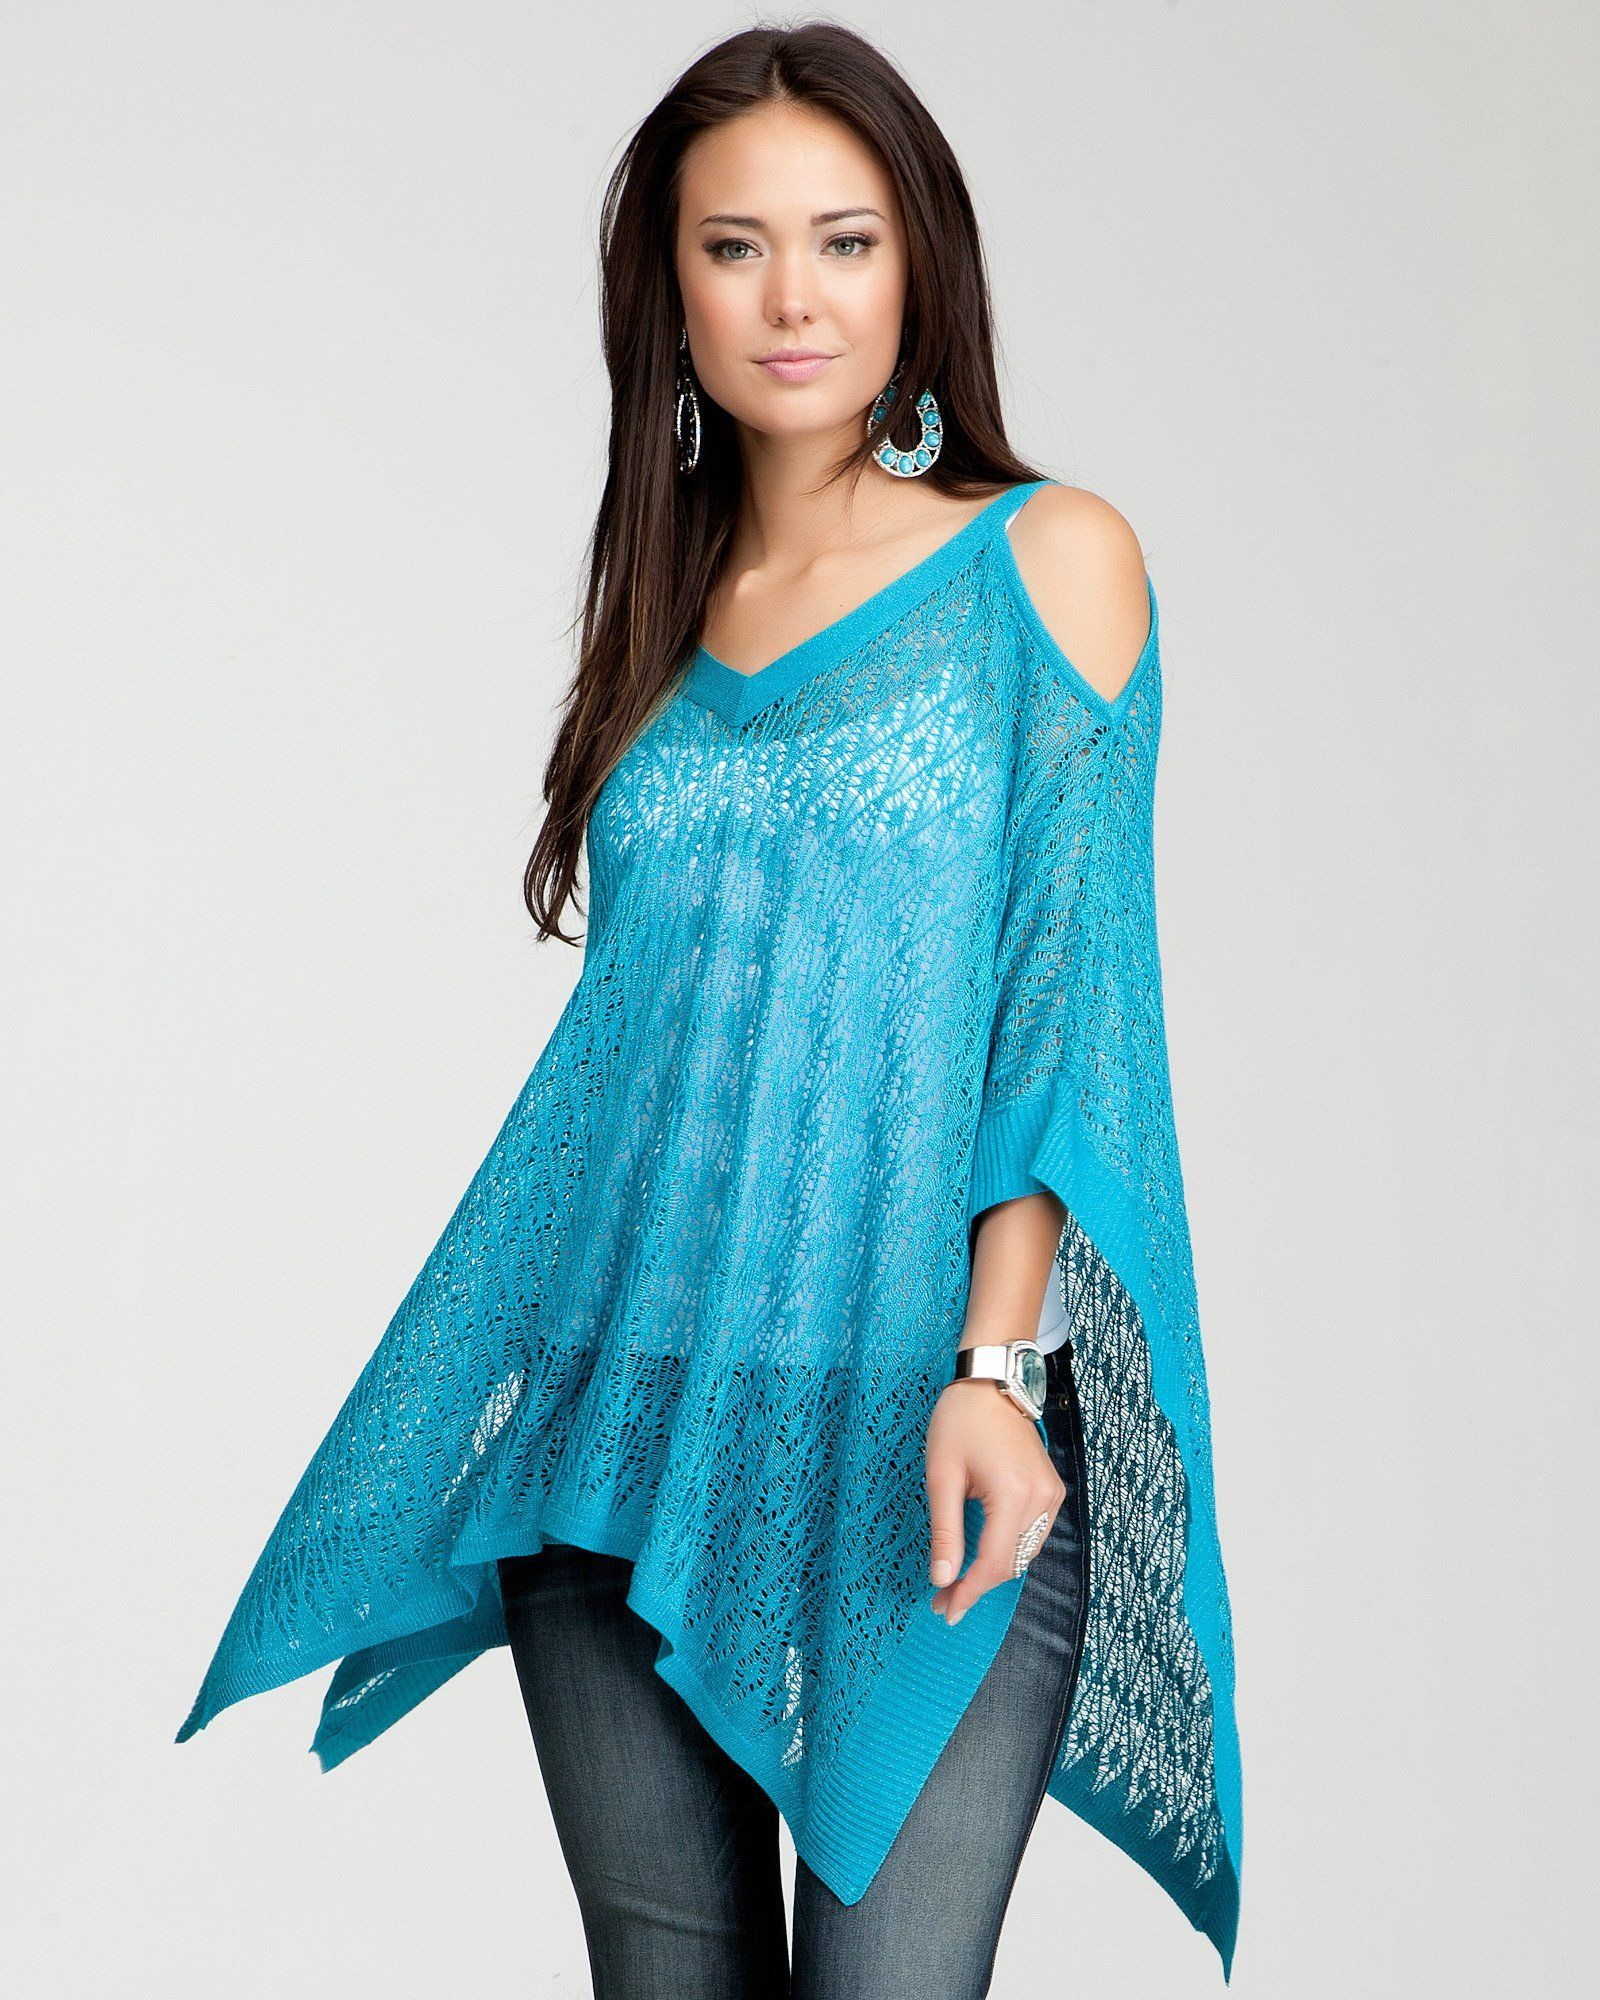 54813f712ba53 10. a chic jacket or cover-up bebe Cold Shoulder Poncho.  bebe and ...